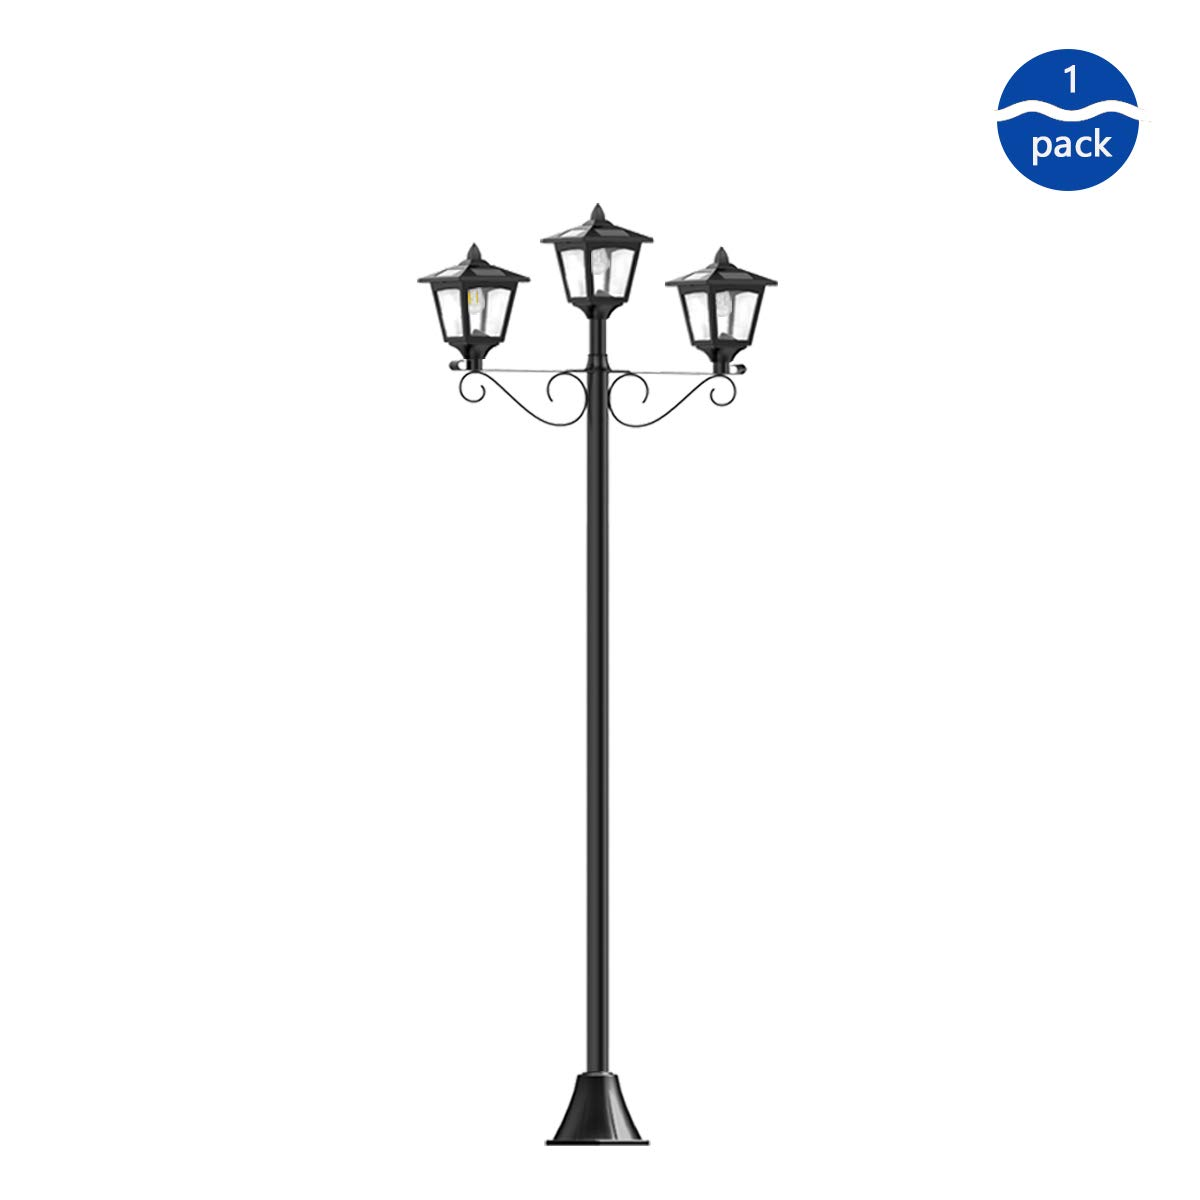 72''Solar Power Supply Street Lamp, Courtyard, Lawn, Garden Lamp, Three-end Retro LED Adjustable Floor Lamp, Outdoor Intelligent Lamps and Lanterns